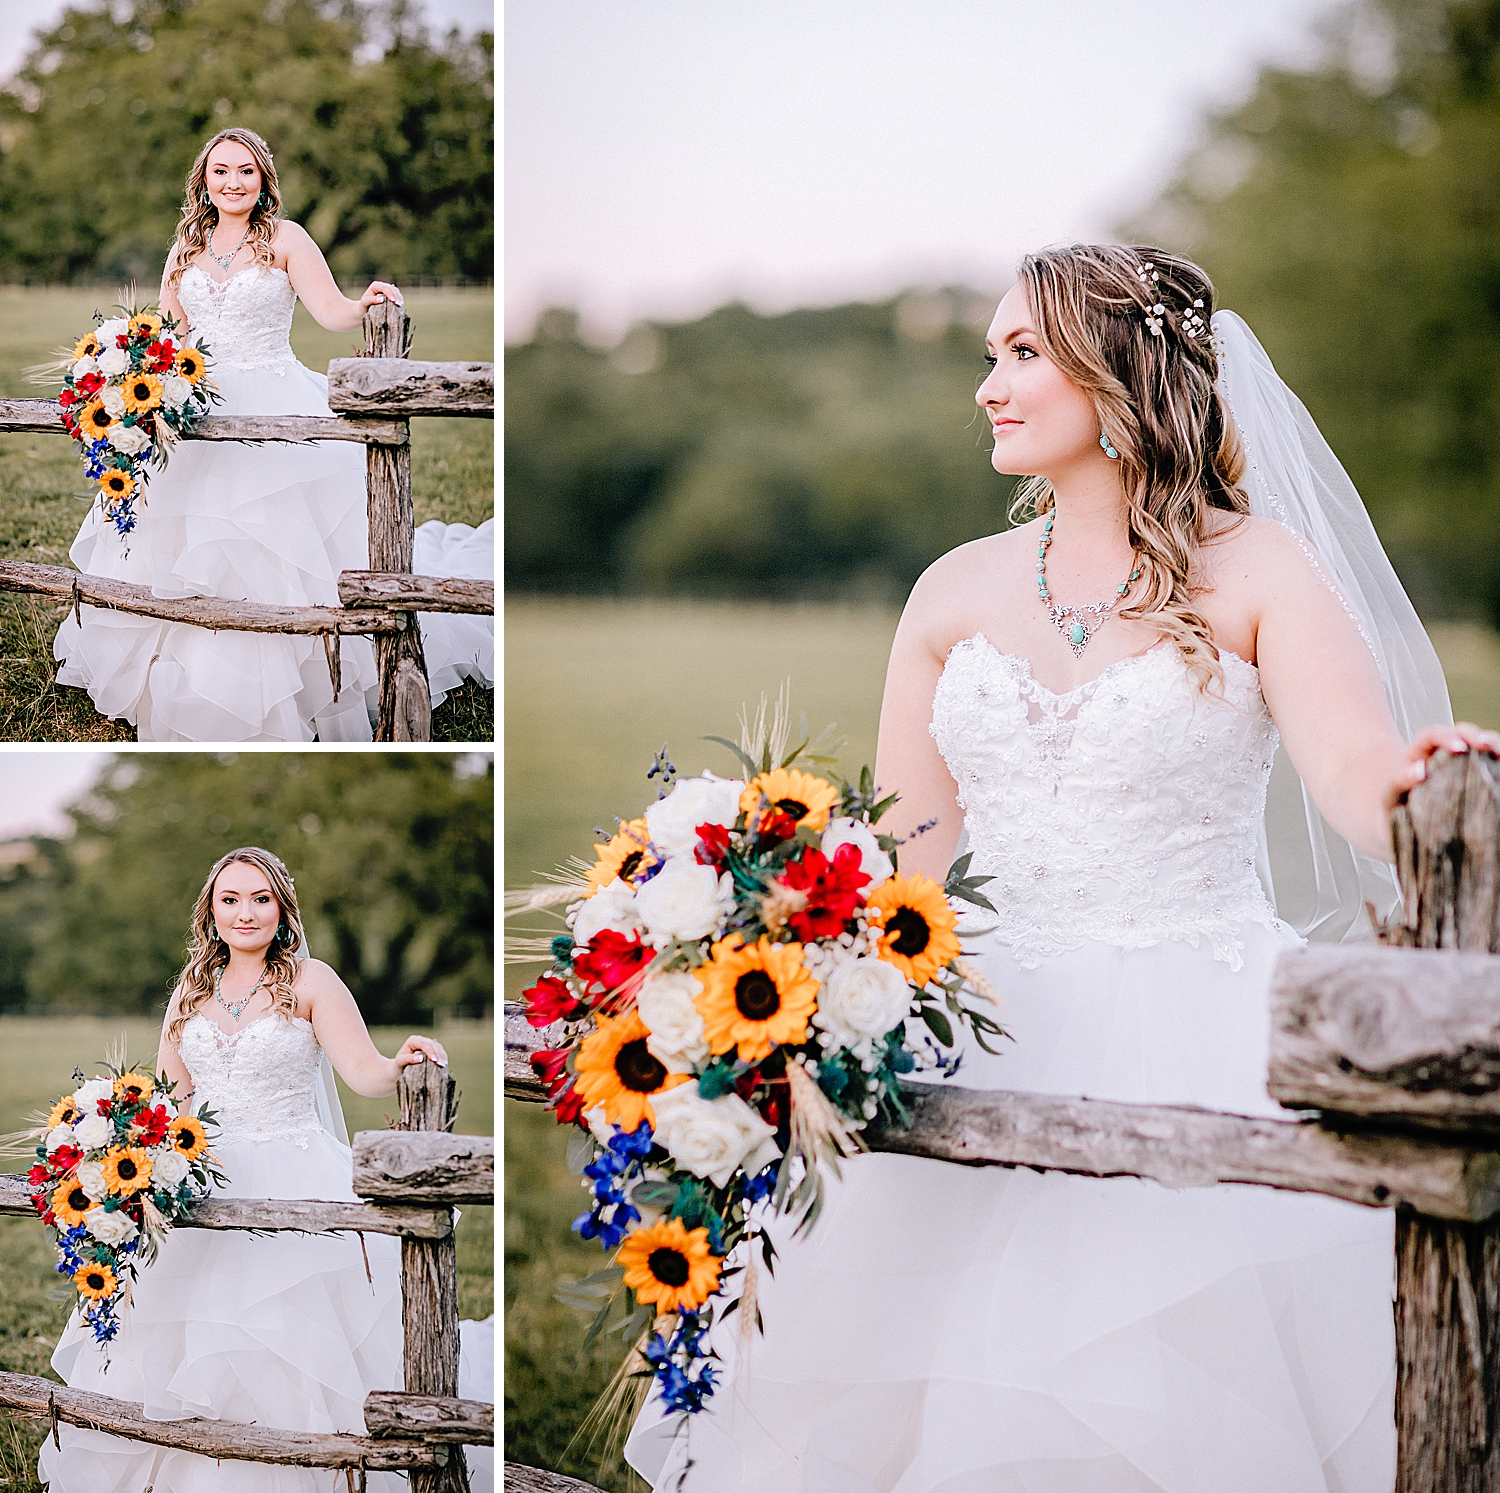 Carly-Barton-Photography-Texas-Bridals-Boerne-Rustic-Wedding-Photos_0018.jpg